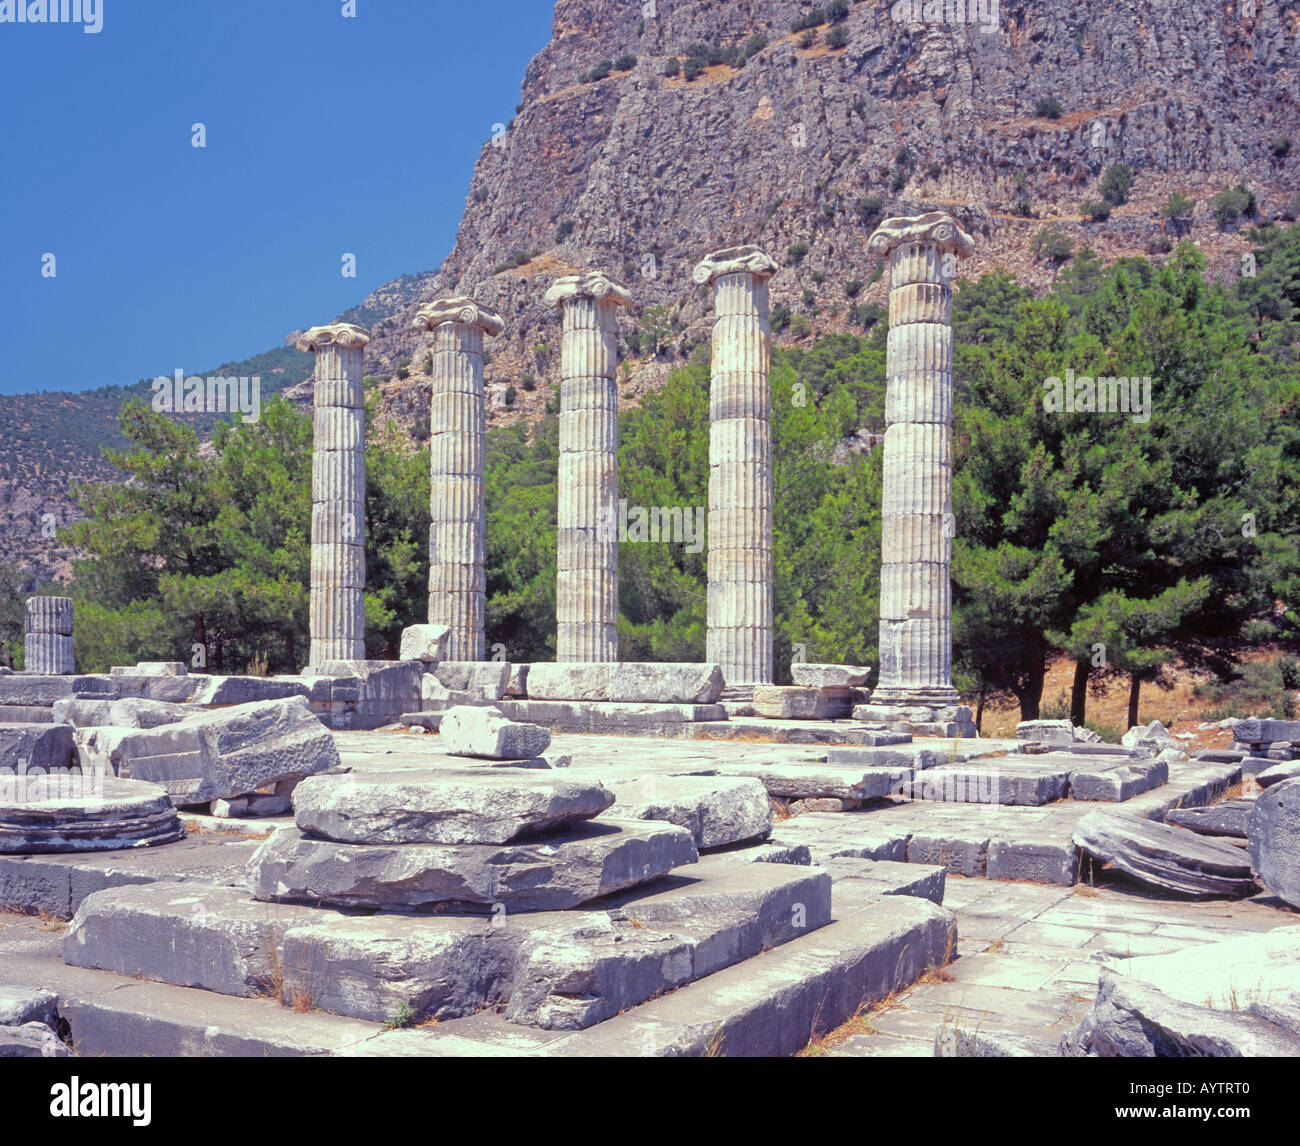 Temple of Aphrodite Ancient Greek Priene Turkey - Stock Image